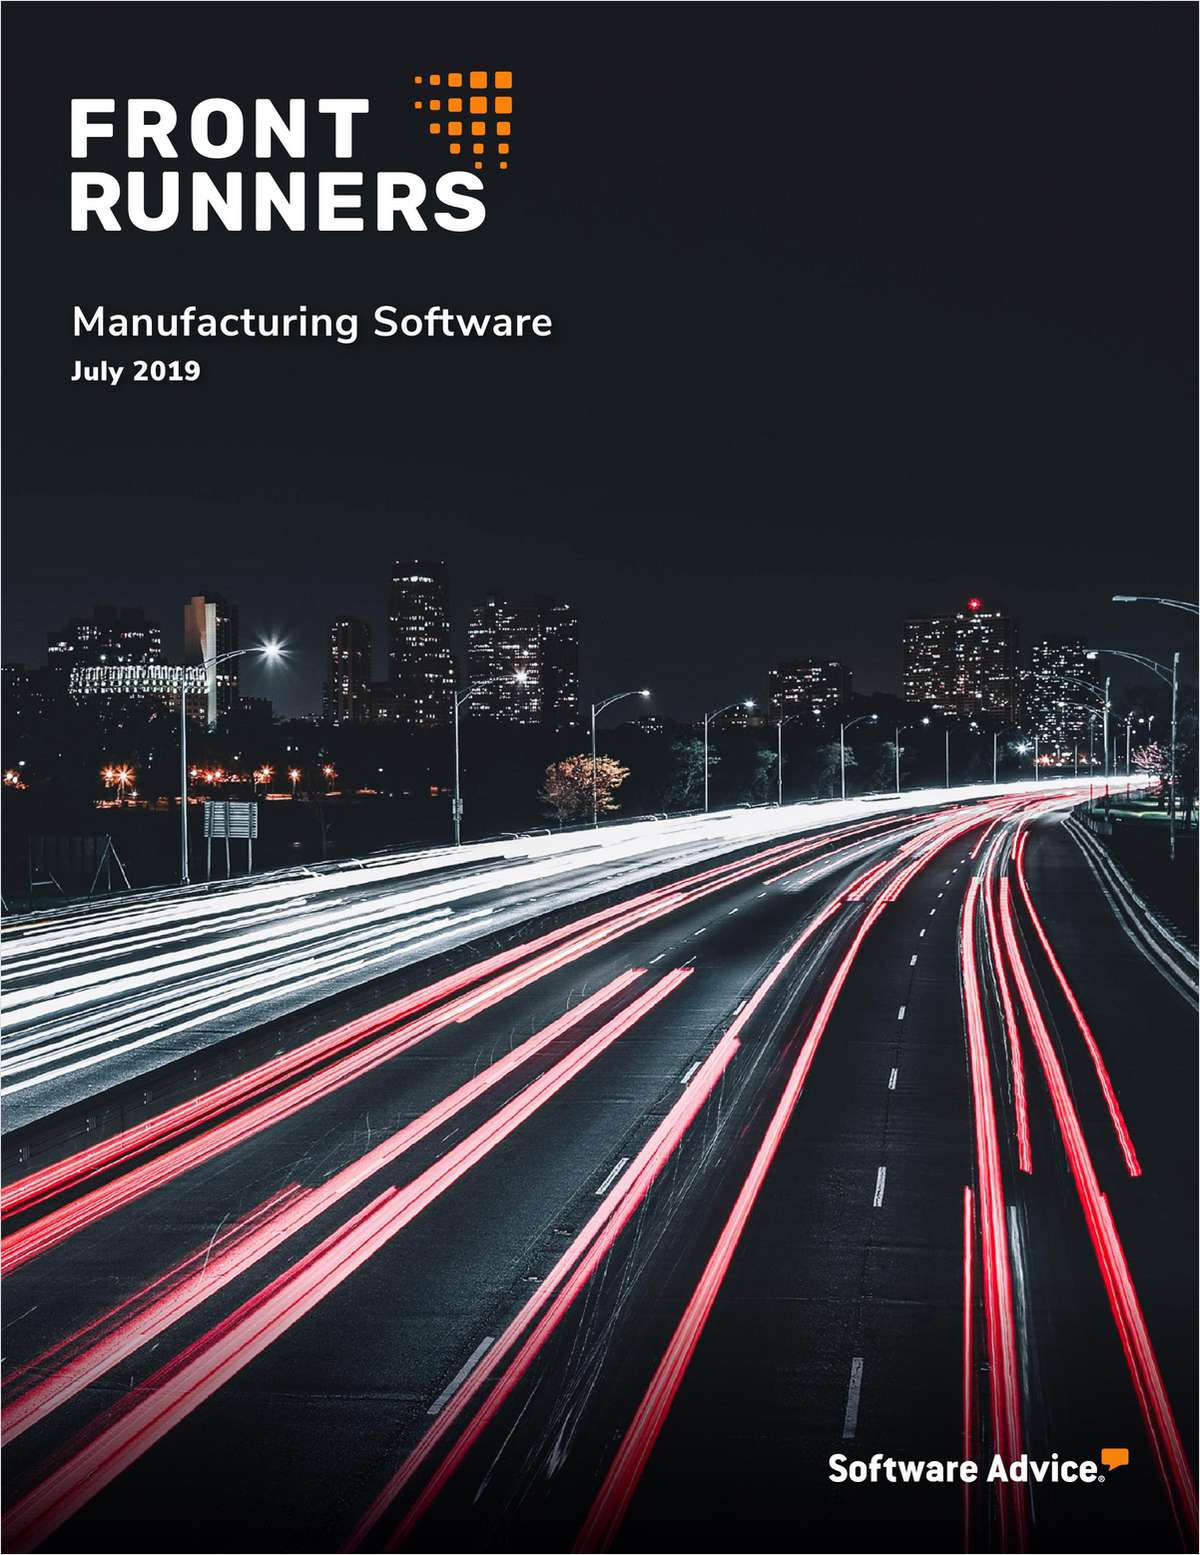 Top Rated FrontRunners for 2019 Manufacturing Software